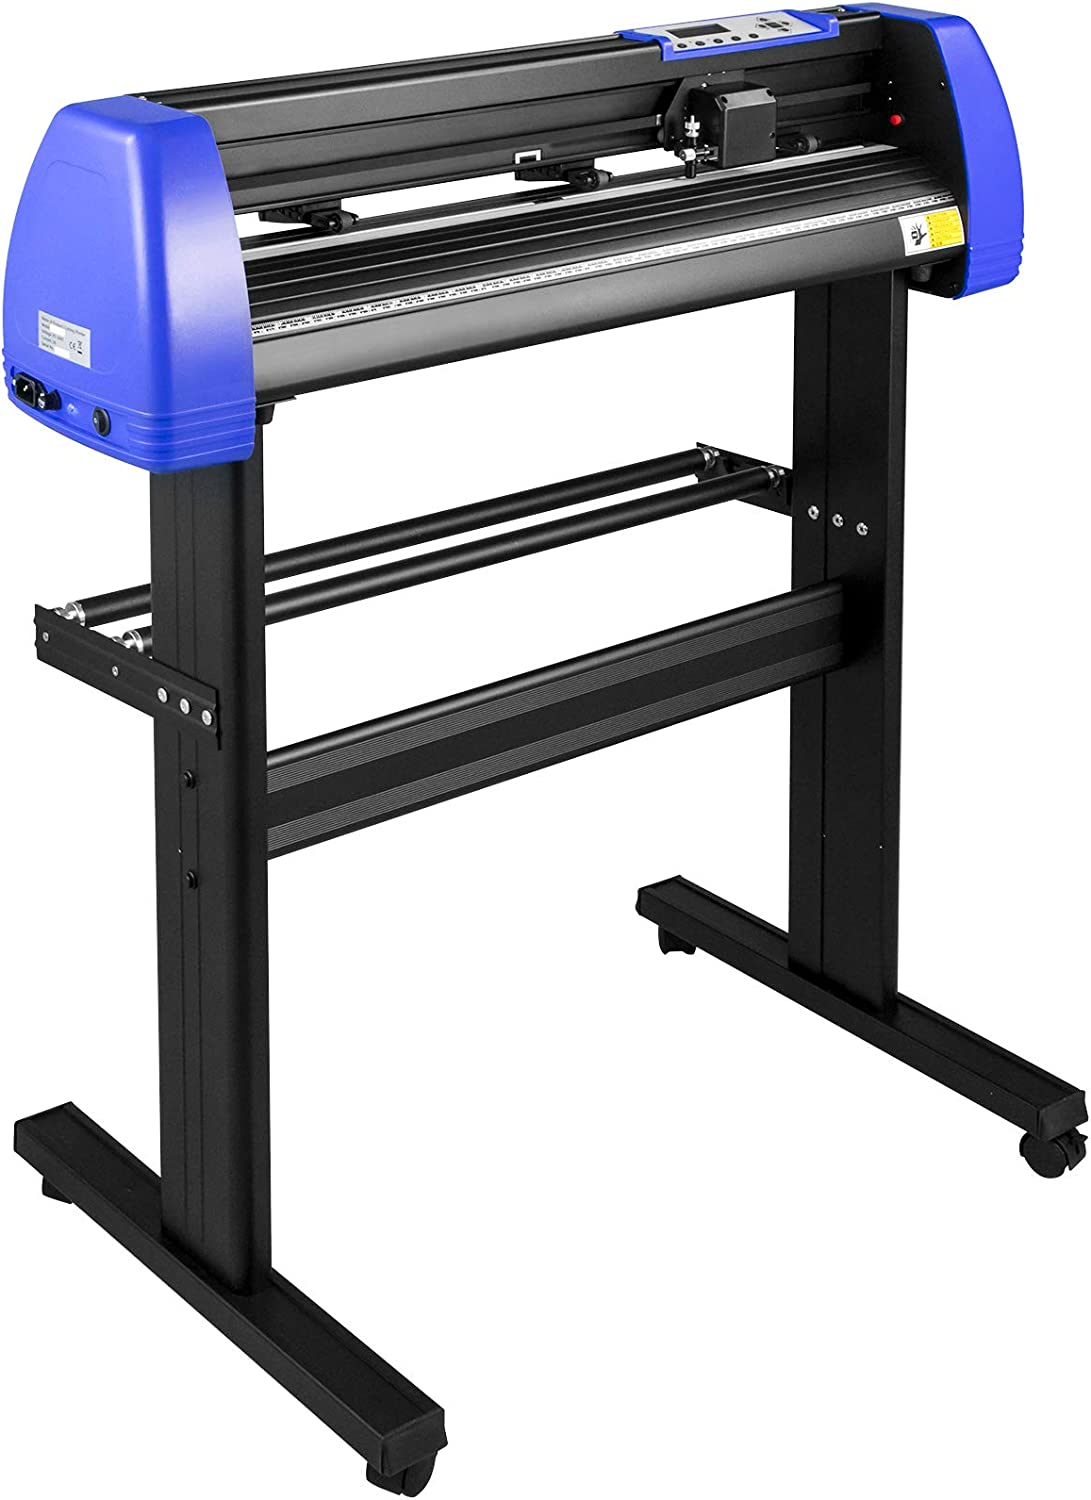 VEVOR Vinyl Cutter 34 Inch Vinyl Cutter Machine with 20 Blades Maximum Paper Feed 870mm Vinyl Plotter Cutter Machine with Sturdy Floor Stand Adjustable Force and Speed for Sign Making PC ONLY